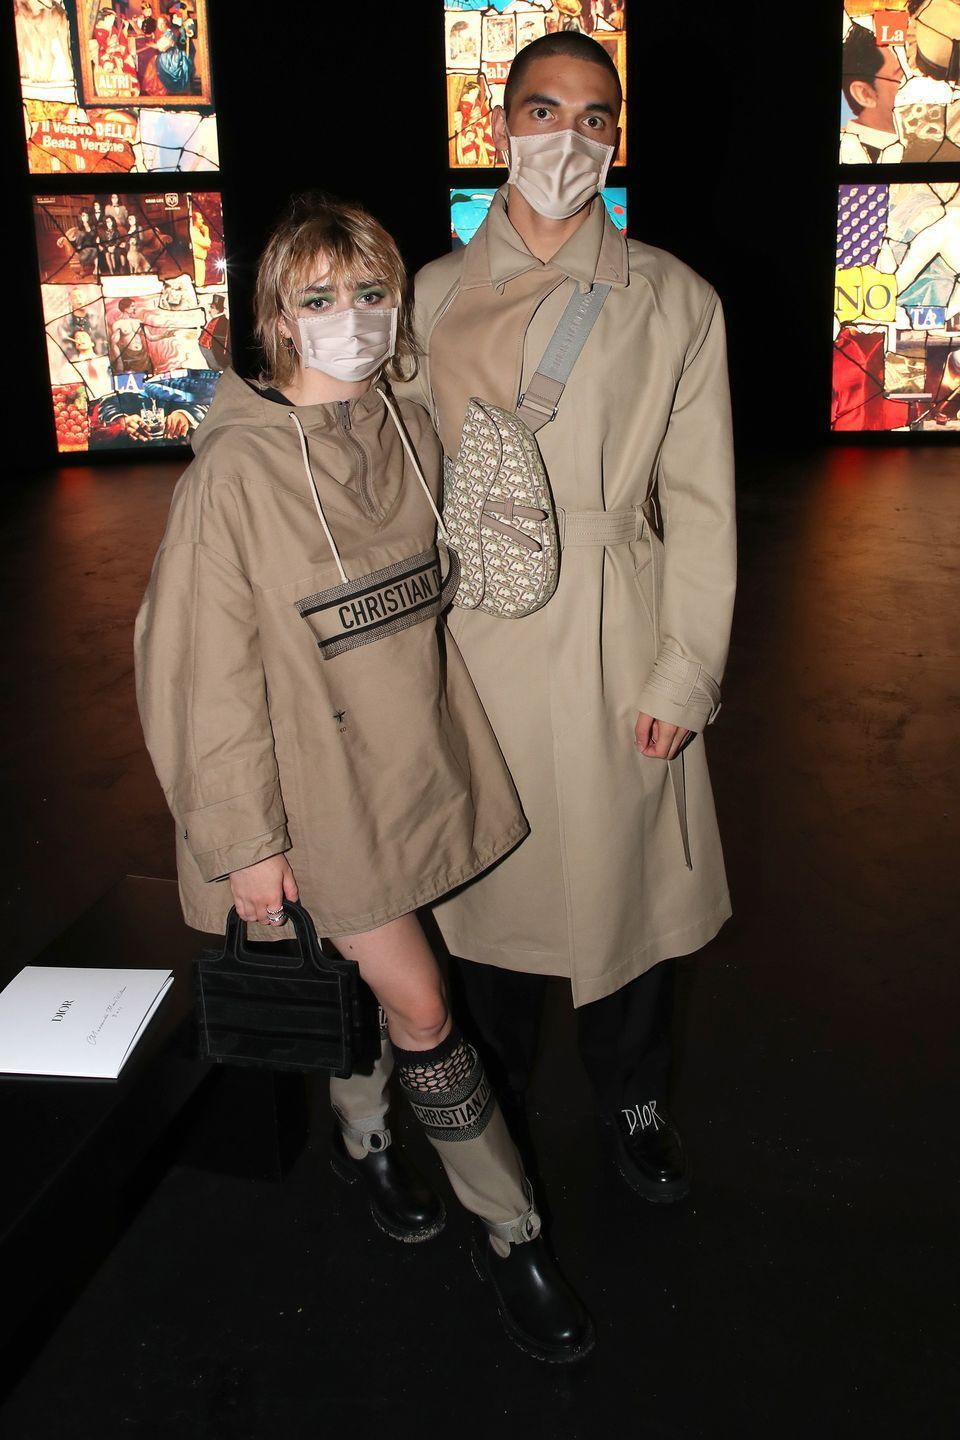 <p><strong>29 September </strong>Maisie Williams and Reuben Selby pose together at the Dior spring/summer 2021 show during Paris Fashion Week<strong>. </strong></p>